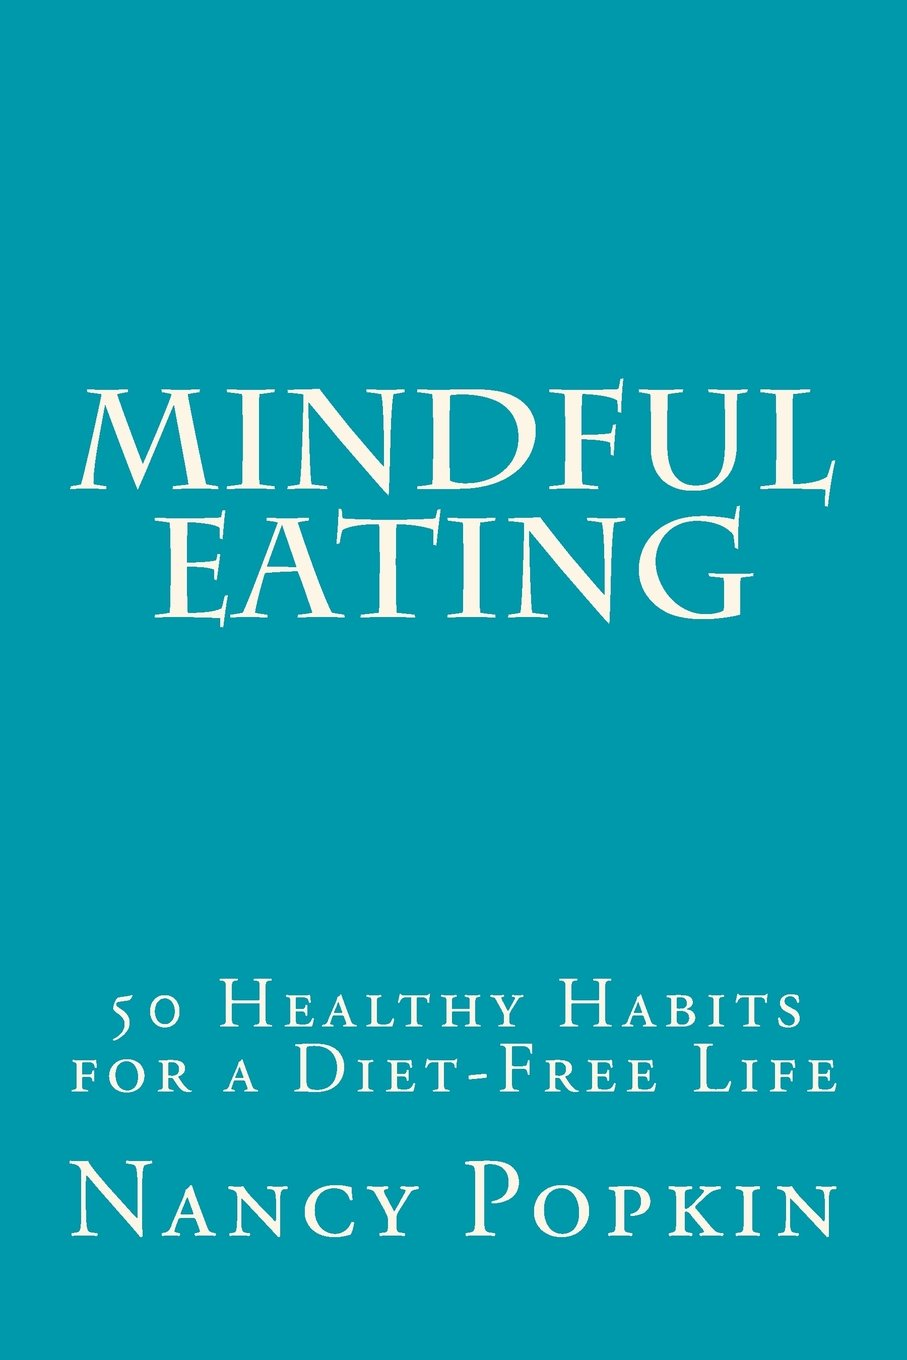 Mindful Eating: 50 Healthy Habits for a Diet-Free Life pdf